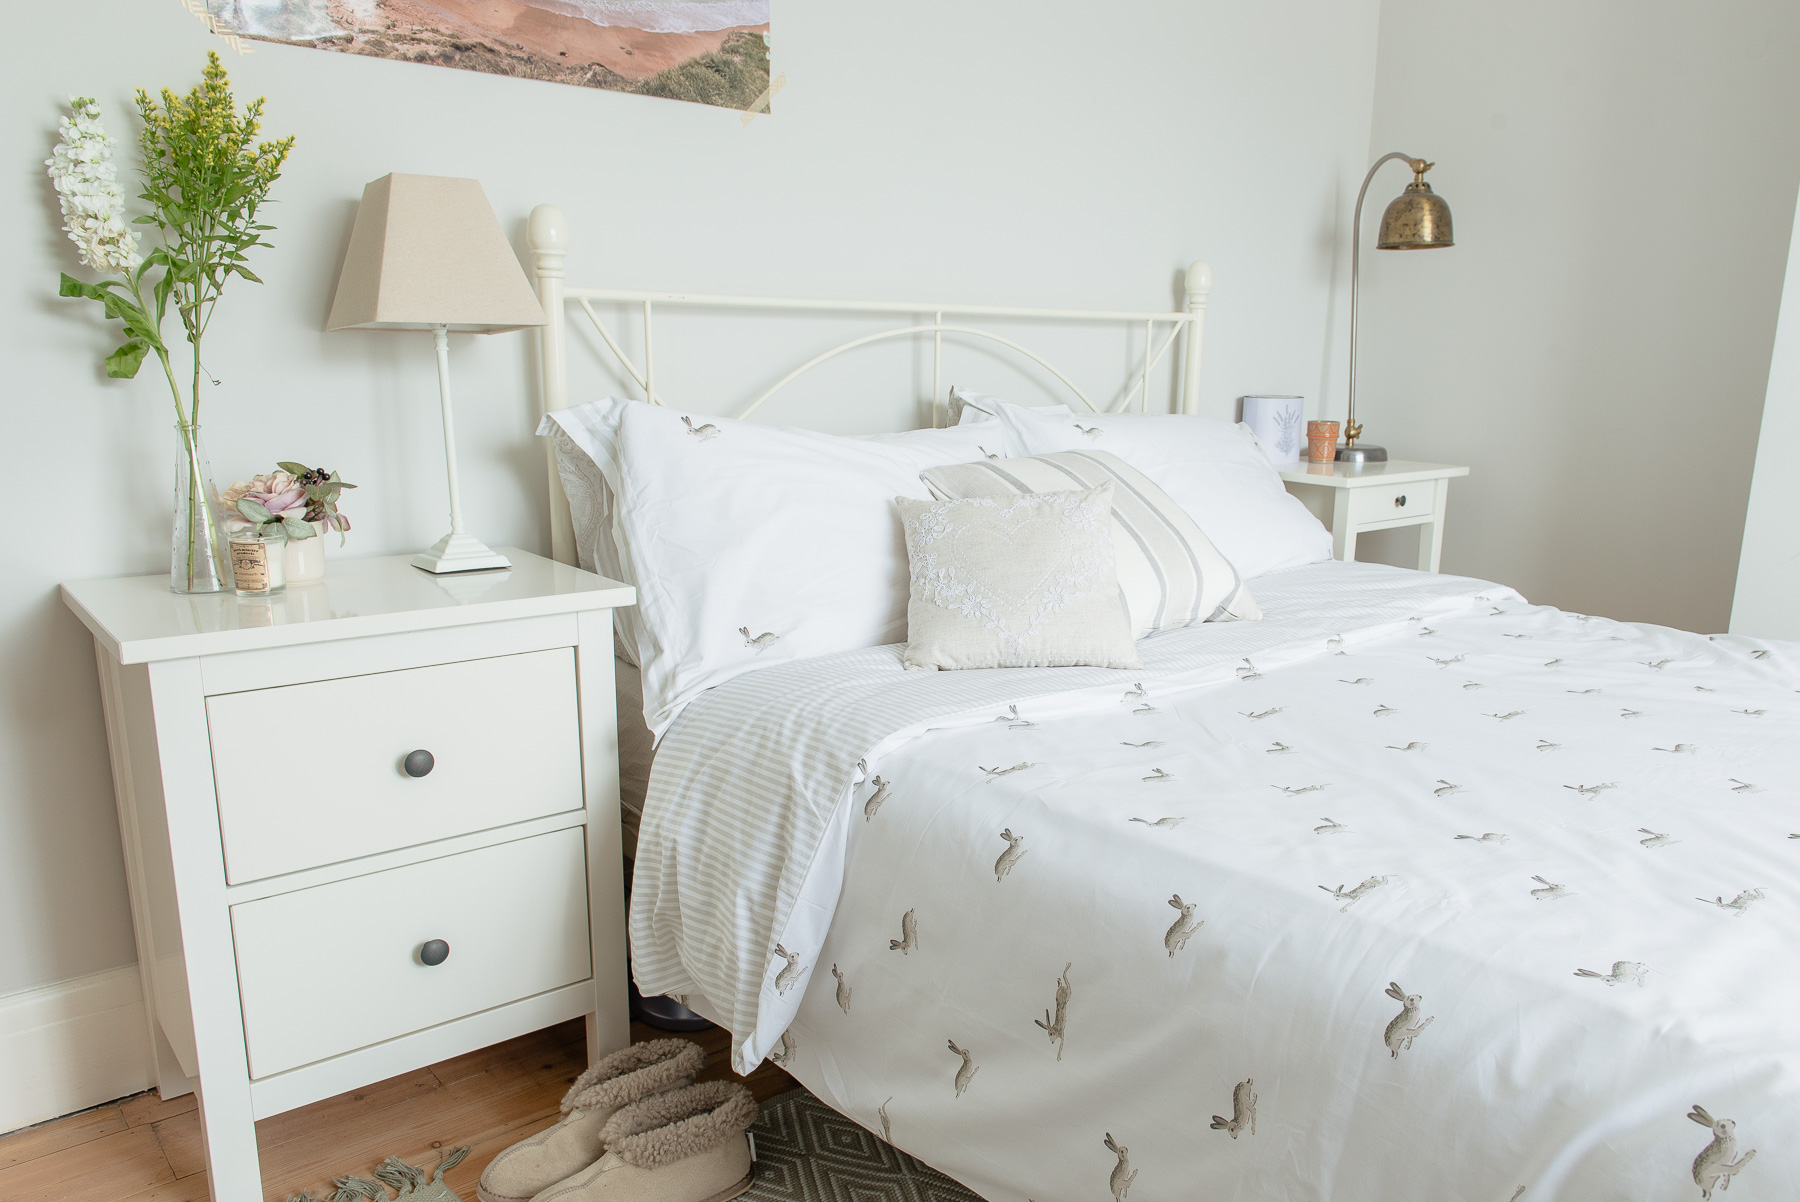 Bringing country charm to our guest bedroom | Home Decor ...